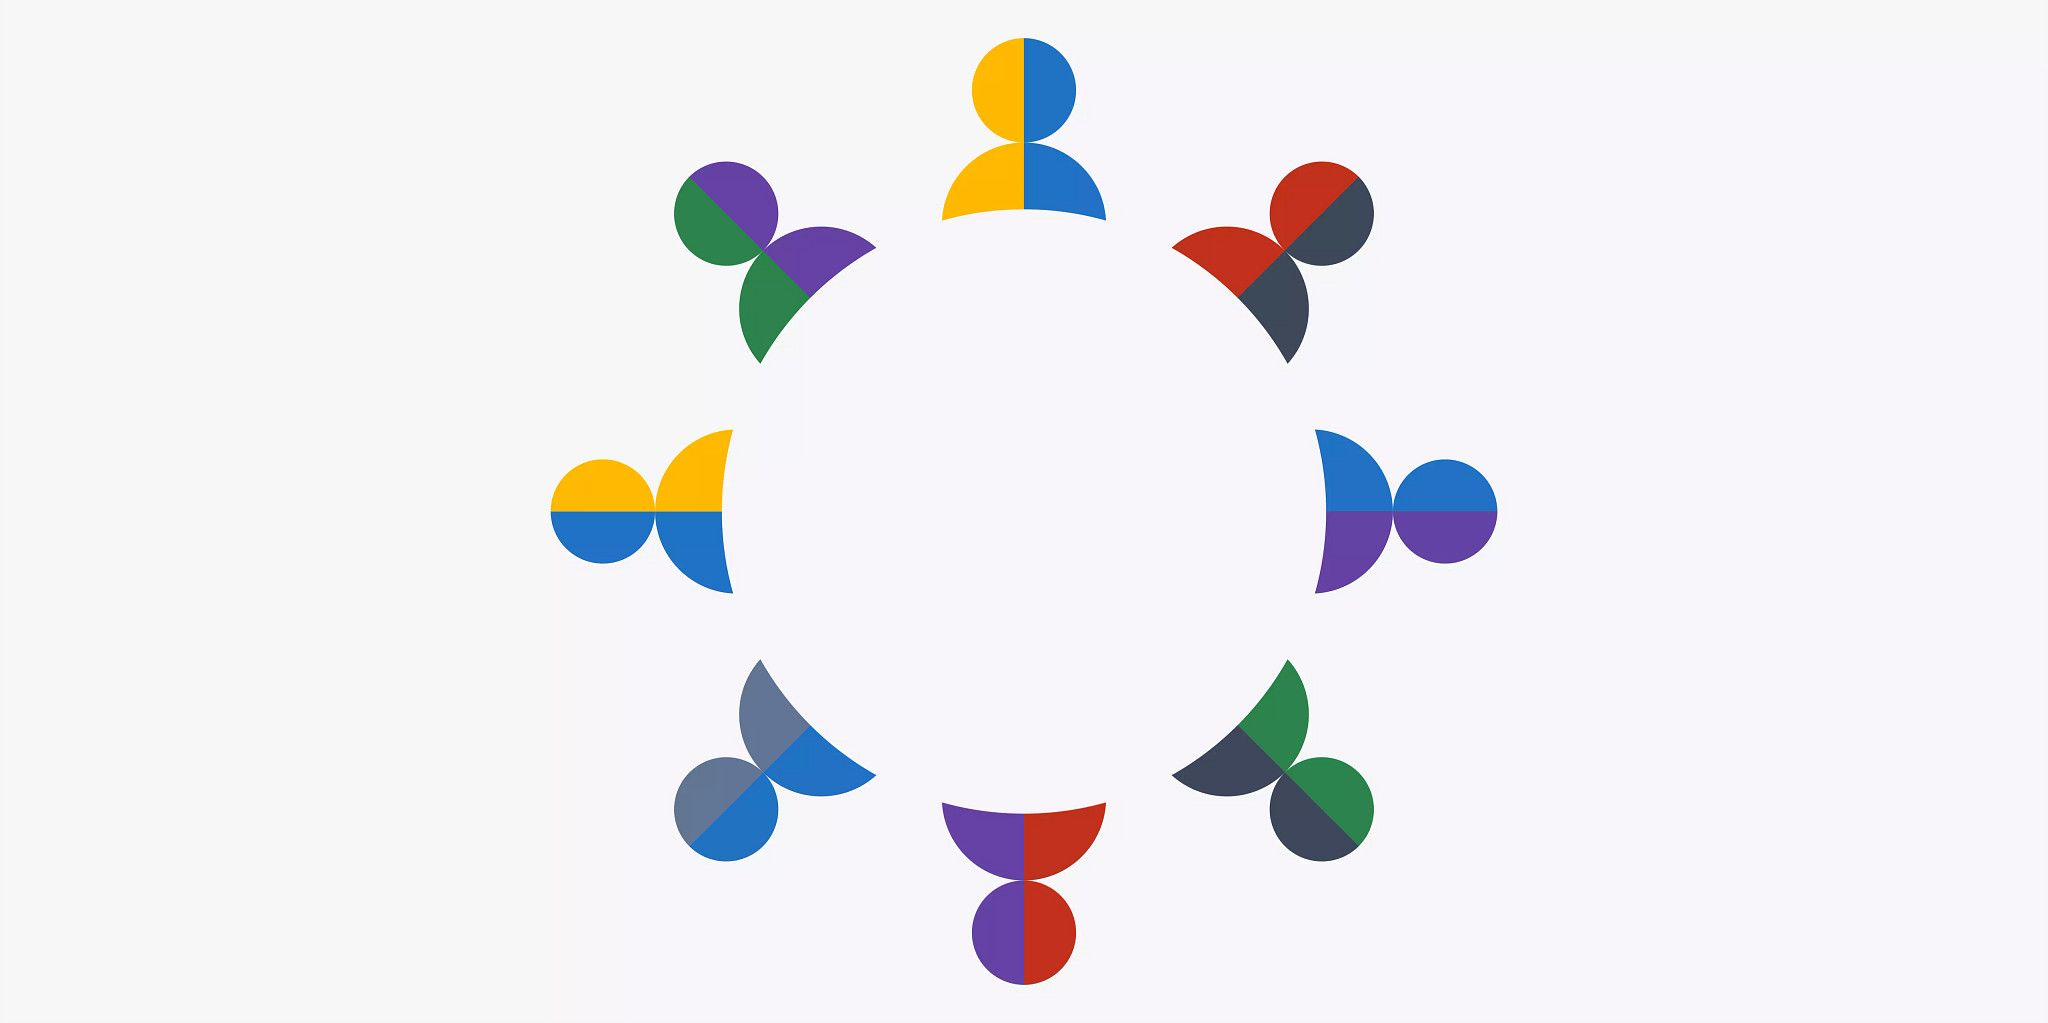 Eight icons representing people placed around the outside of a circle located in the center of the graphic.